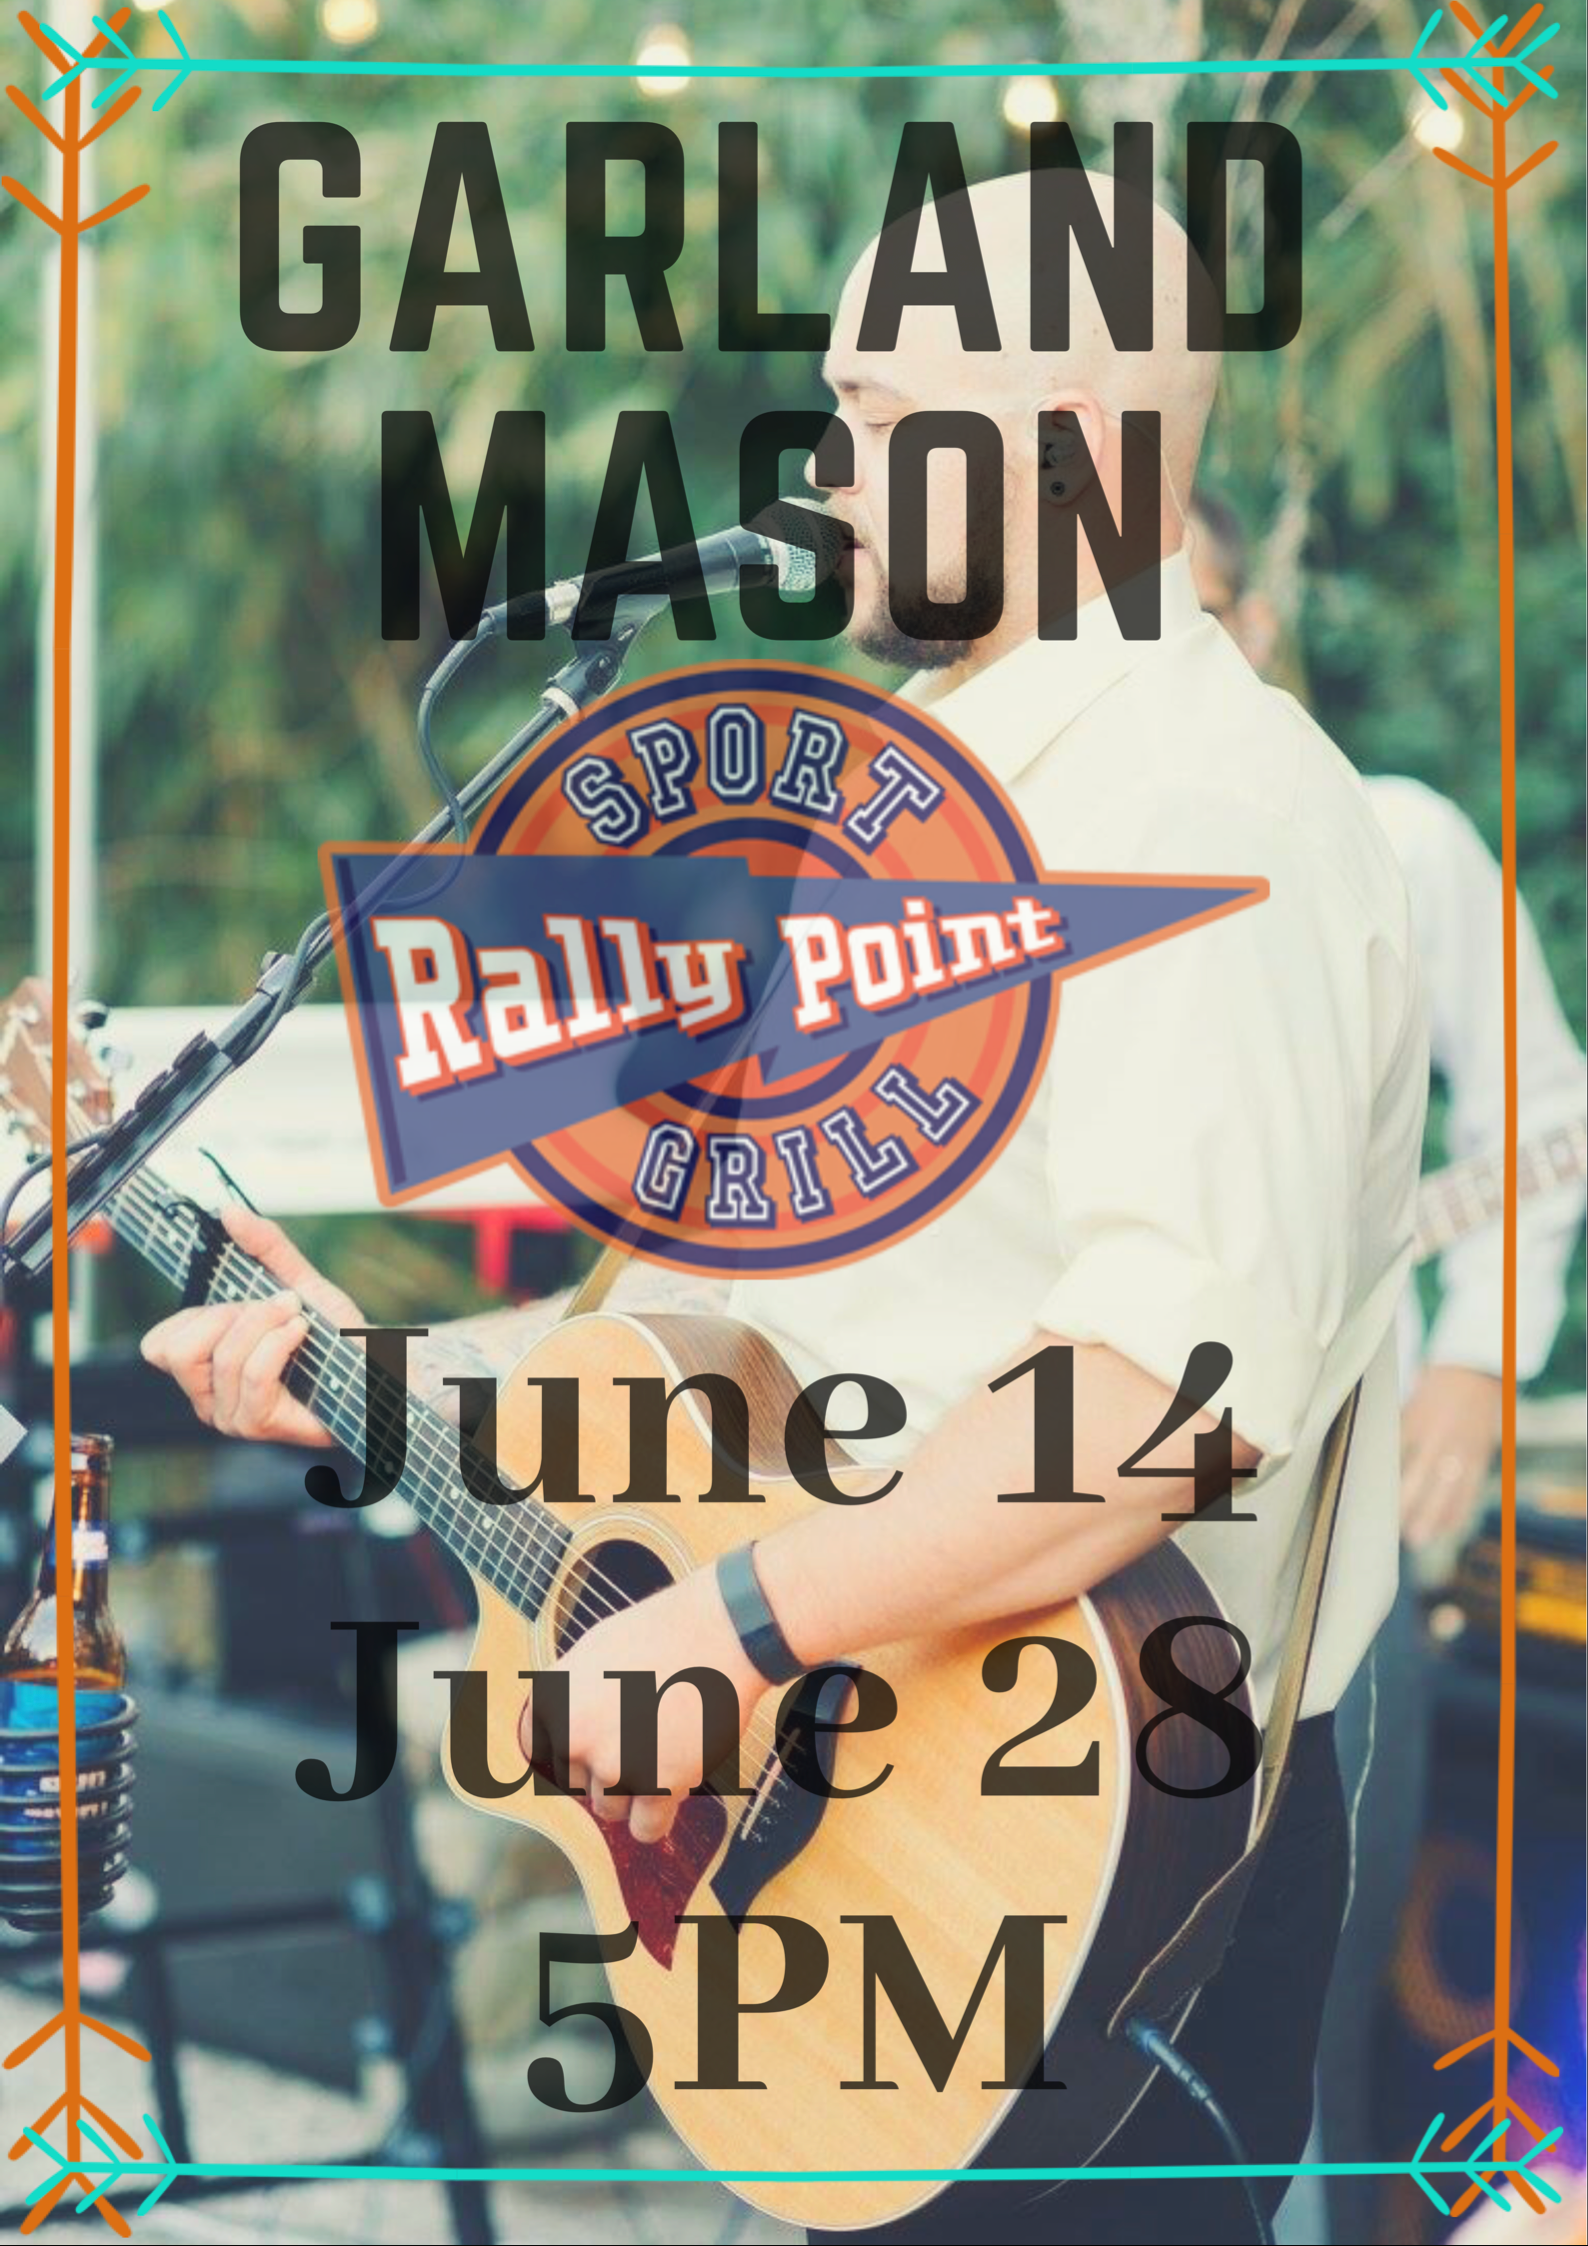 Garland Mason Live Music in Cary, NC at RallyPoint Sport Grill